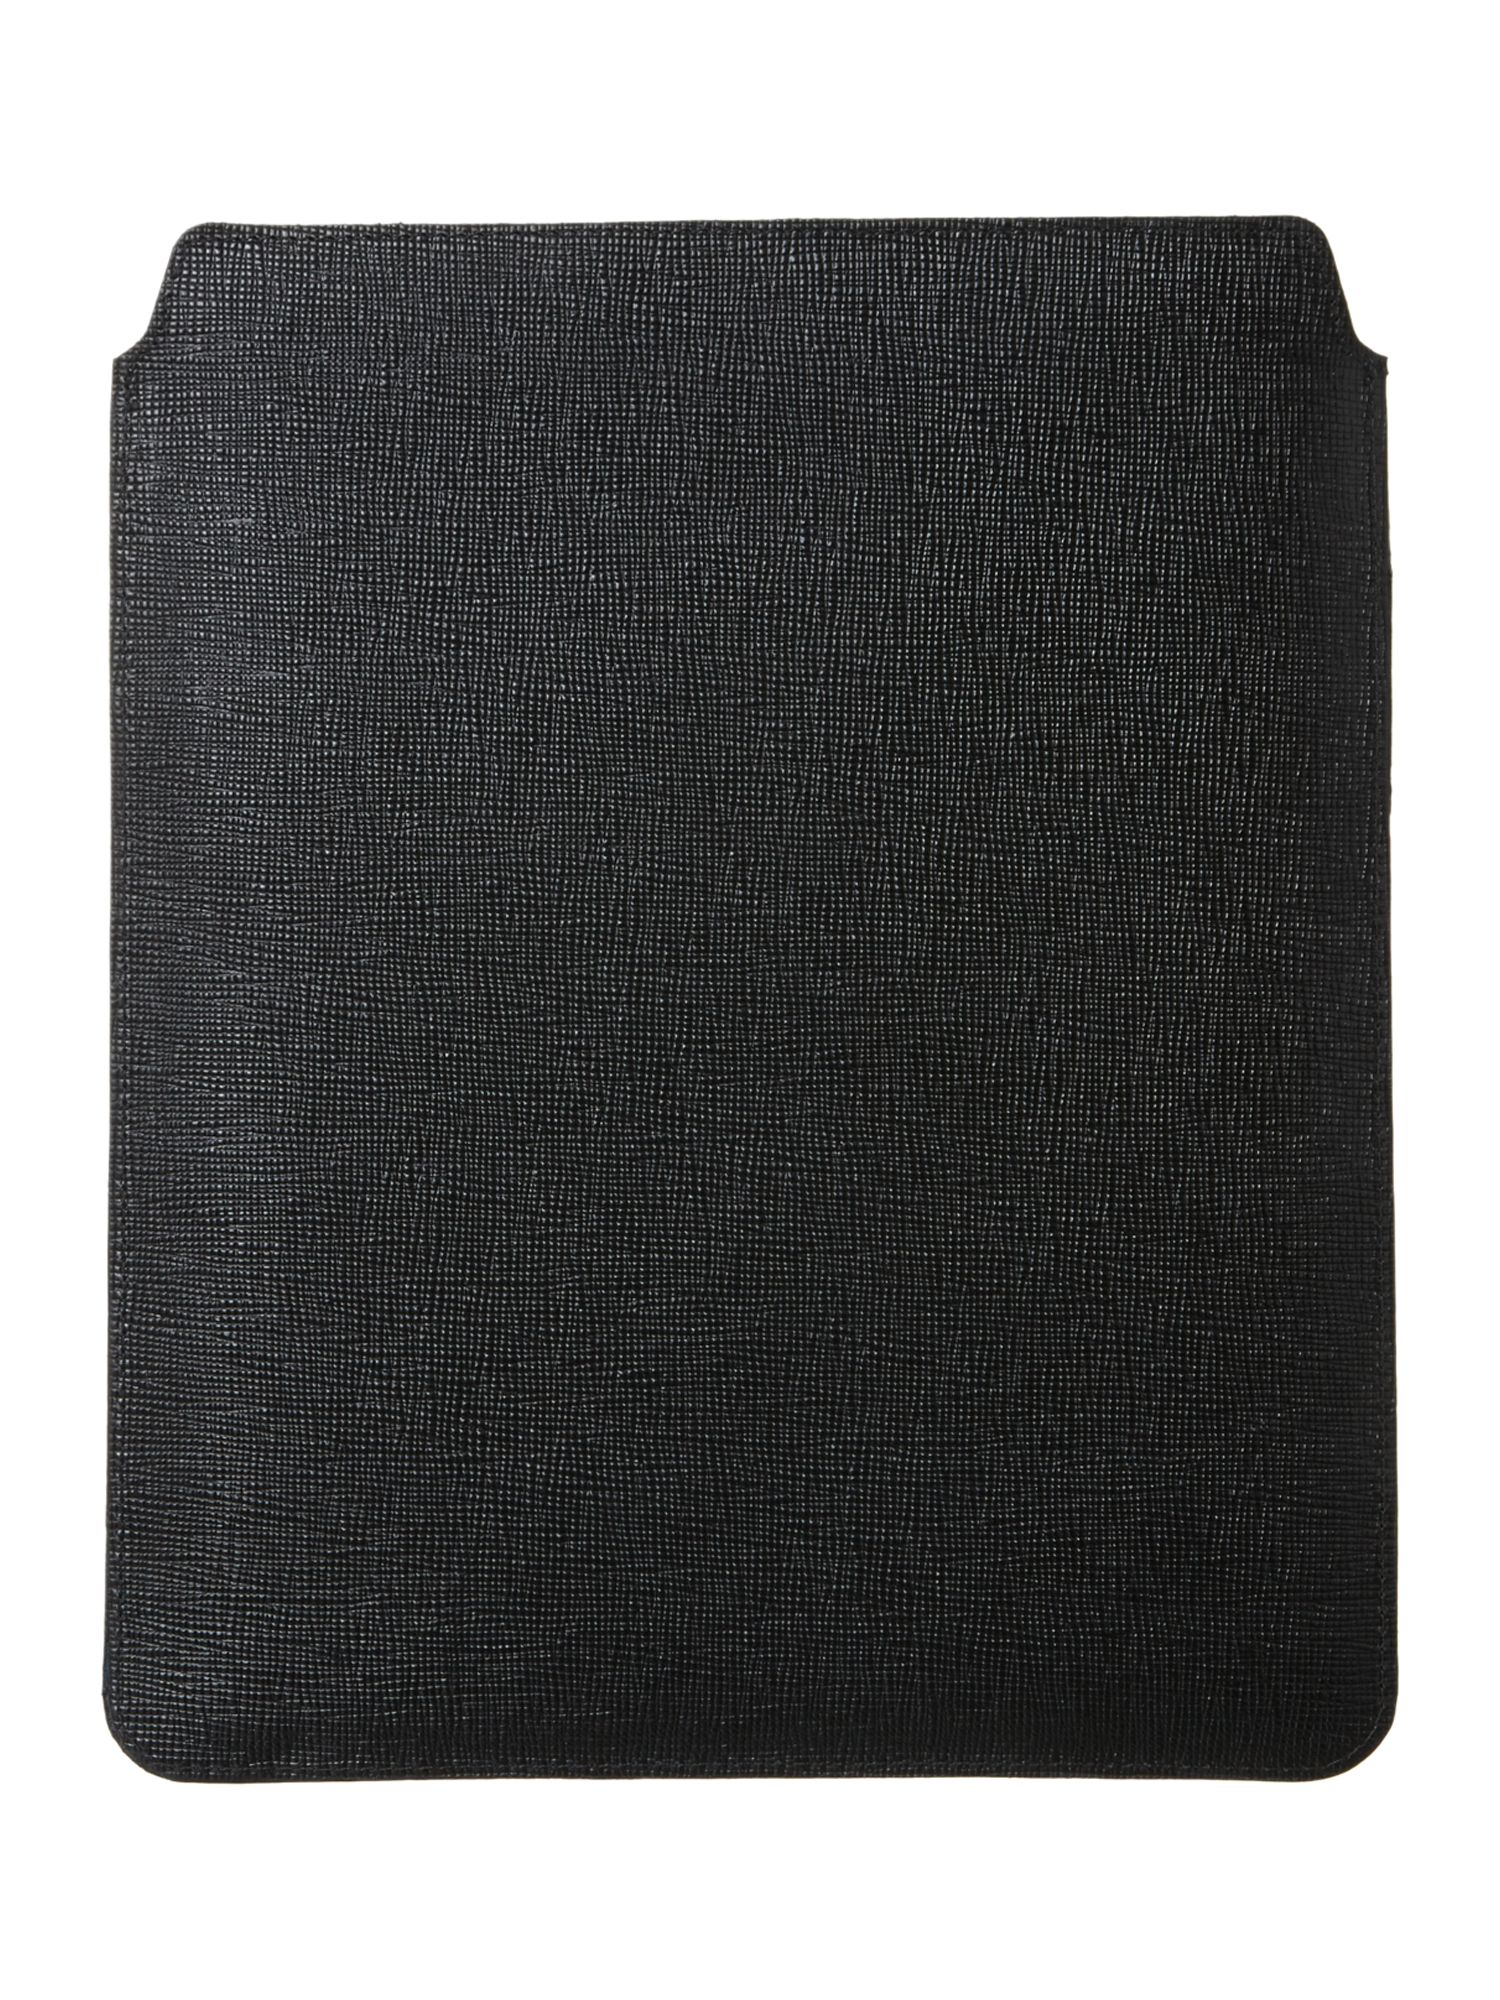 Crossgrain iPad case